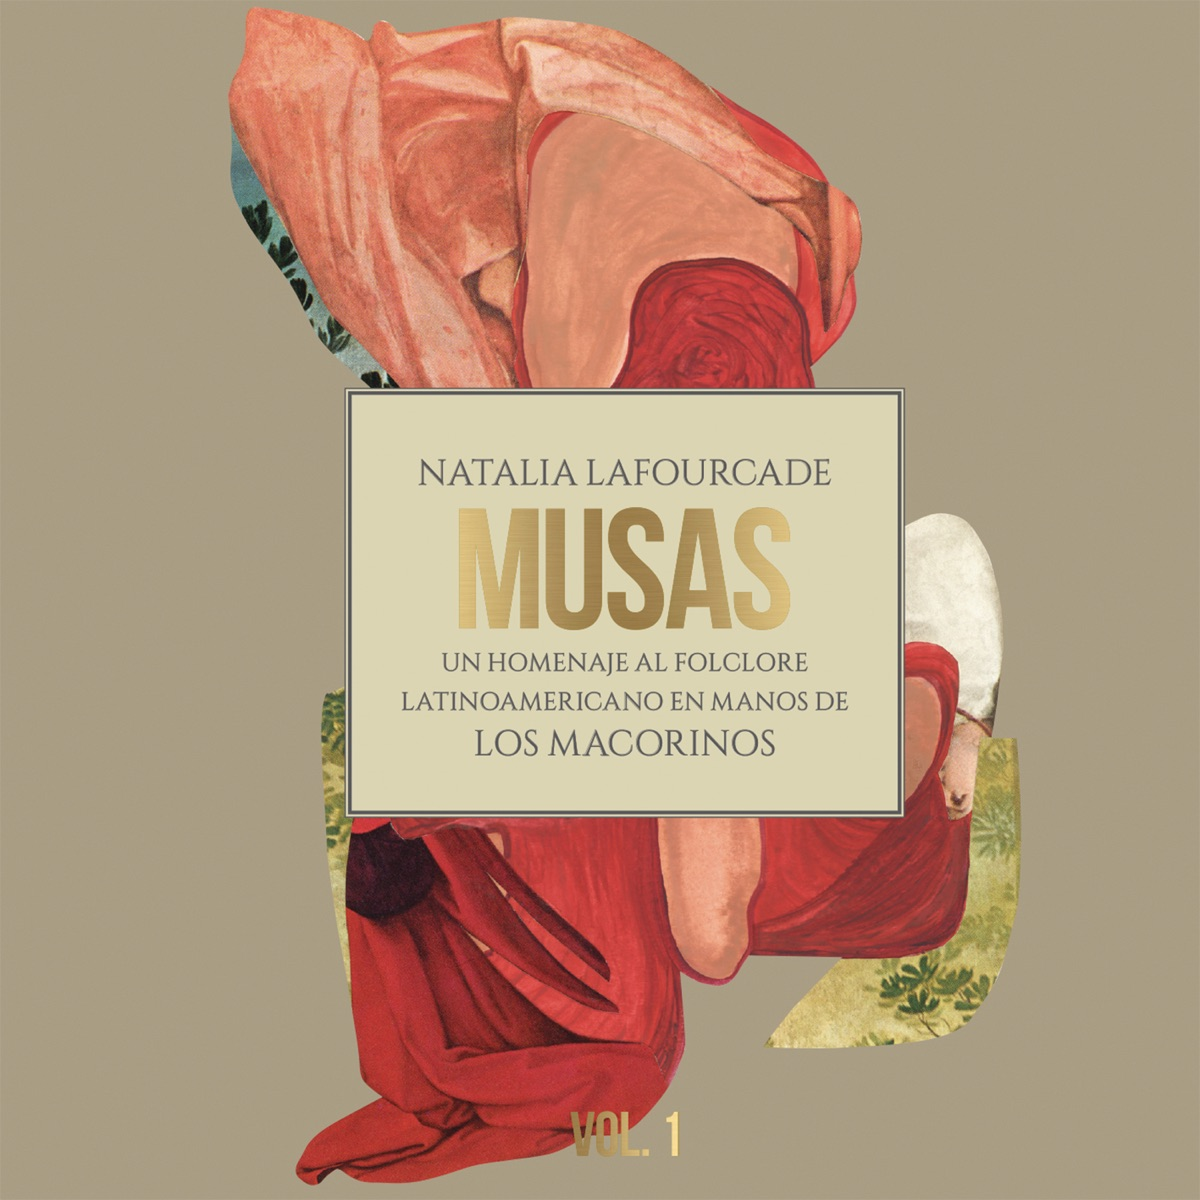 Released may 05 2017 genres electronic dance - Natalia Lafourcade Musas Pre Order 2017 Itunes Plus Aac M4a Album Genres Pop Latino Music Latino Expected Release May 05 2017